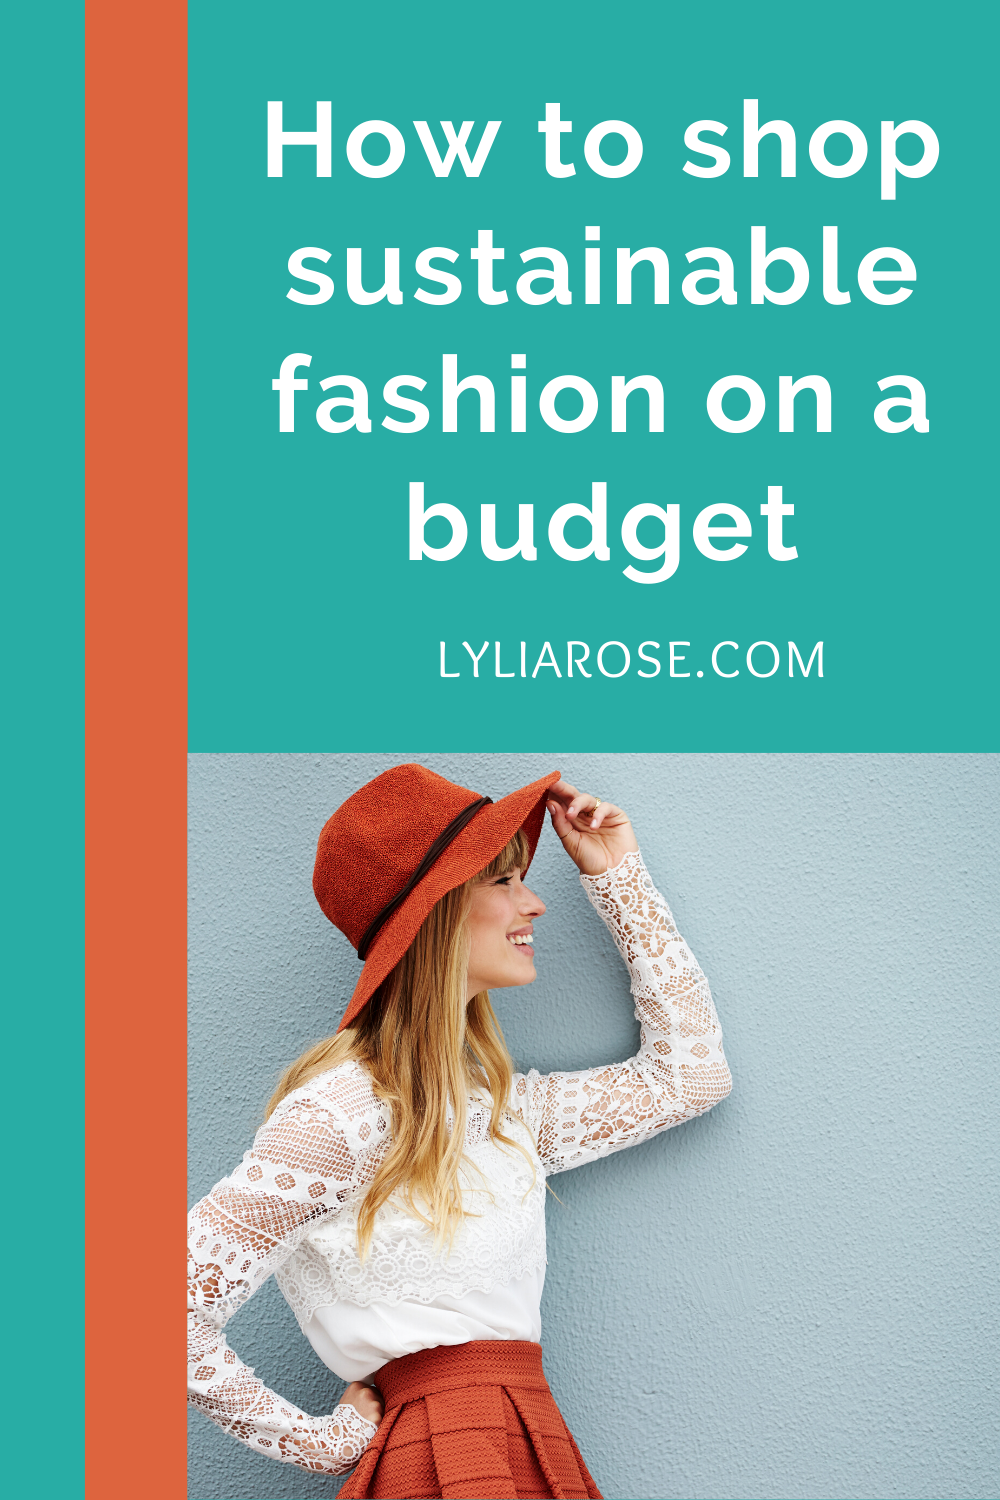 How to shop sustainable fashion on a budget